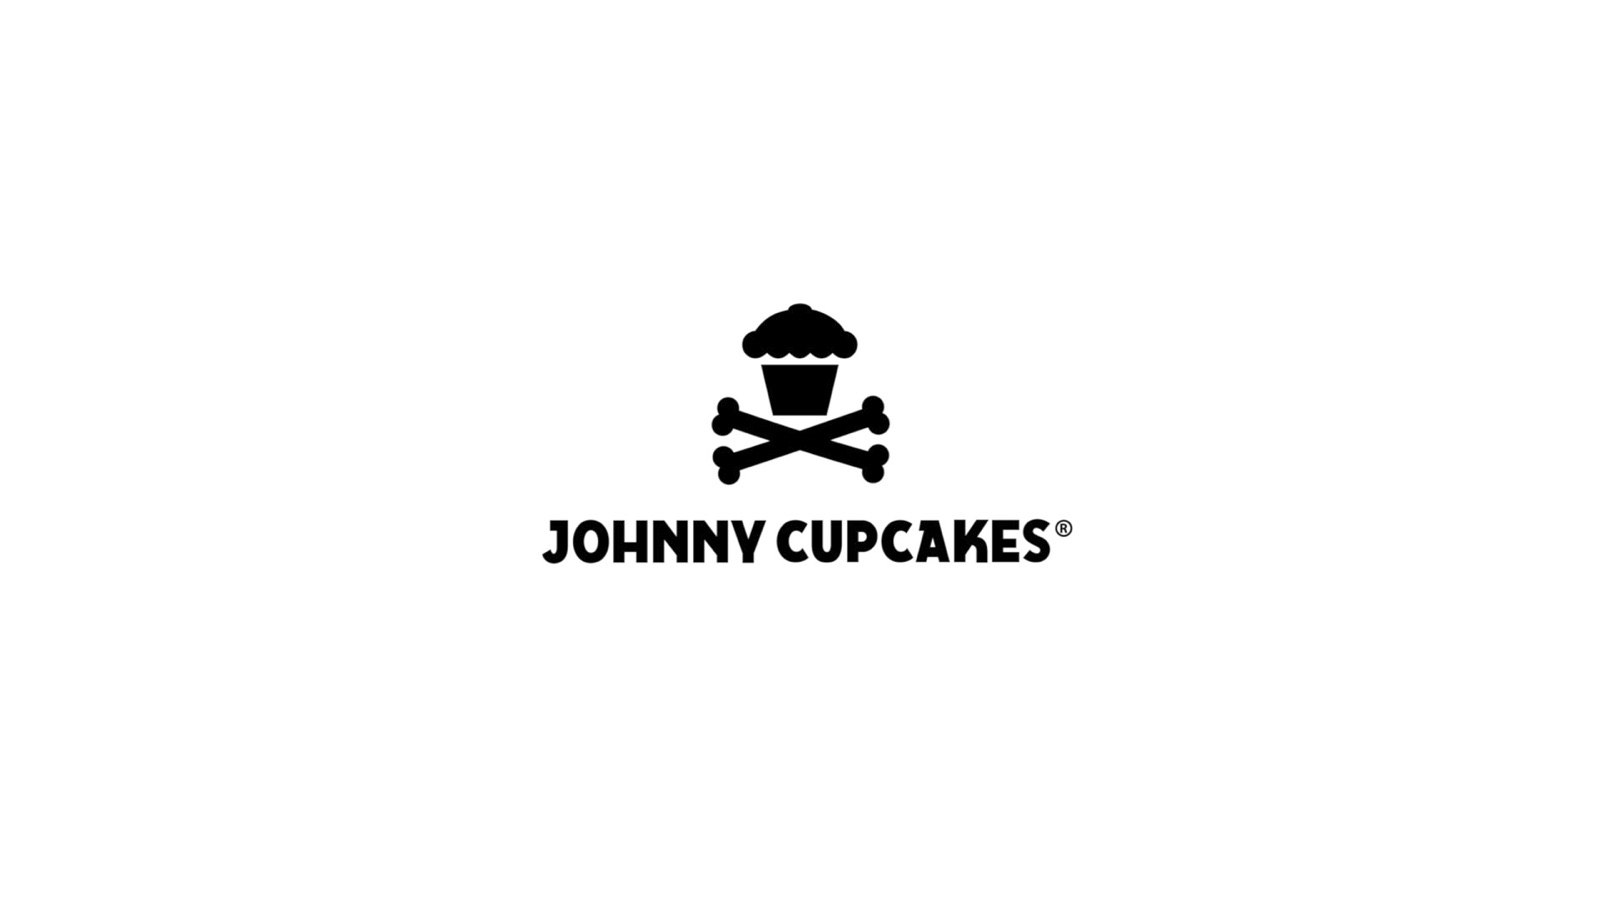 Johnny-Cupcakes-Pop-Up.jpg-1.jpeg